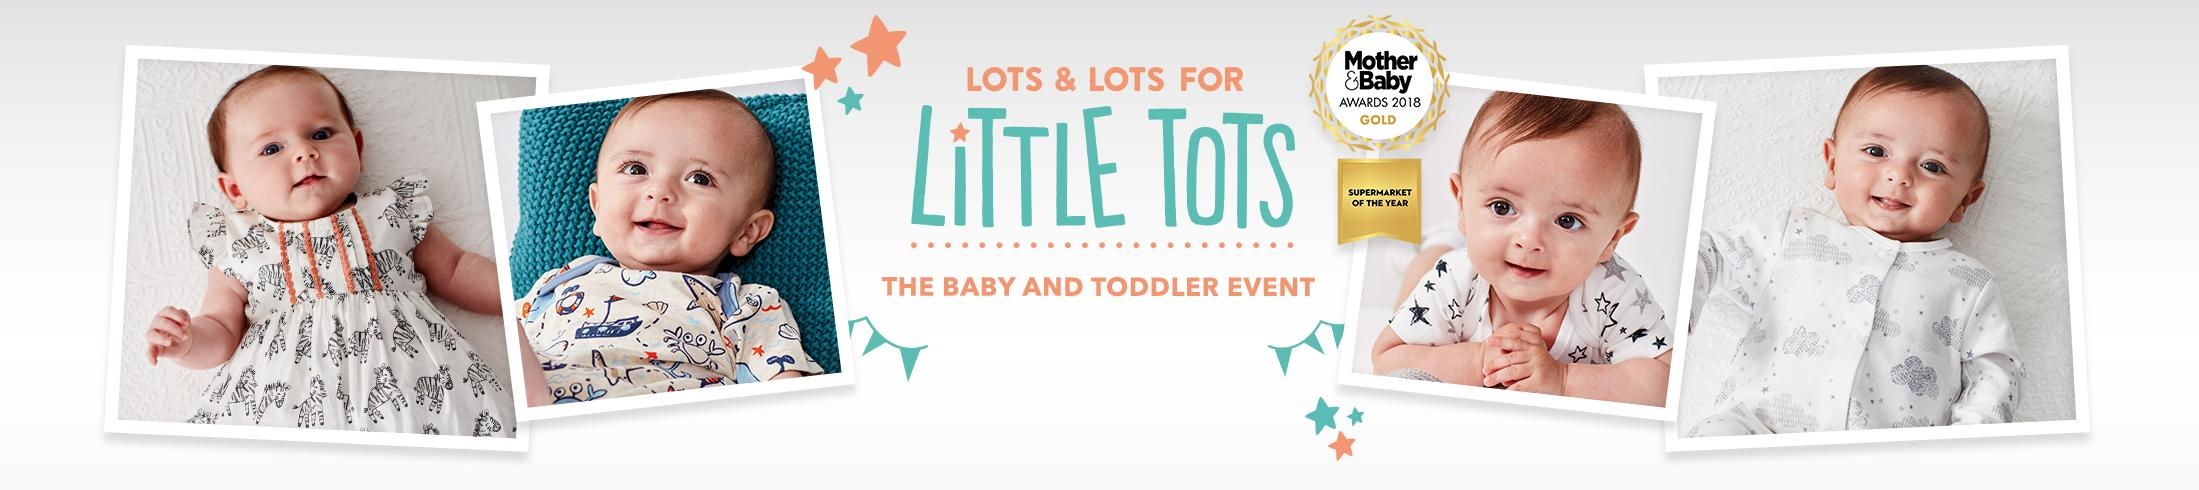 Get everything you need for your new arrival from our baby and toddler event